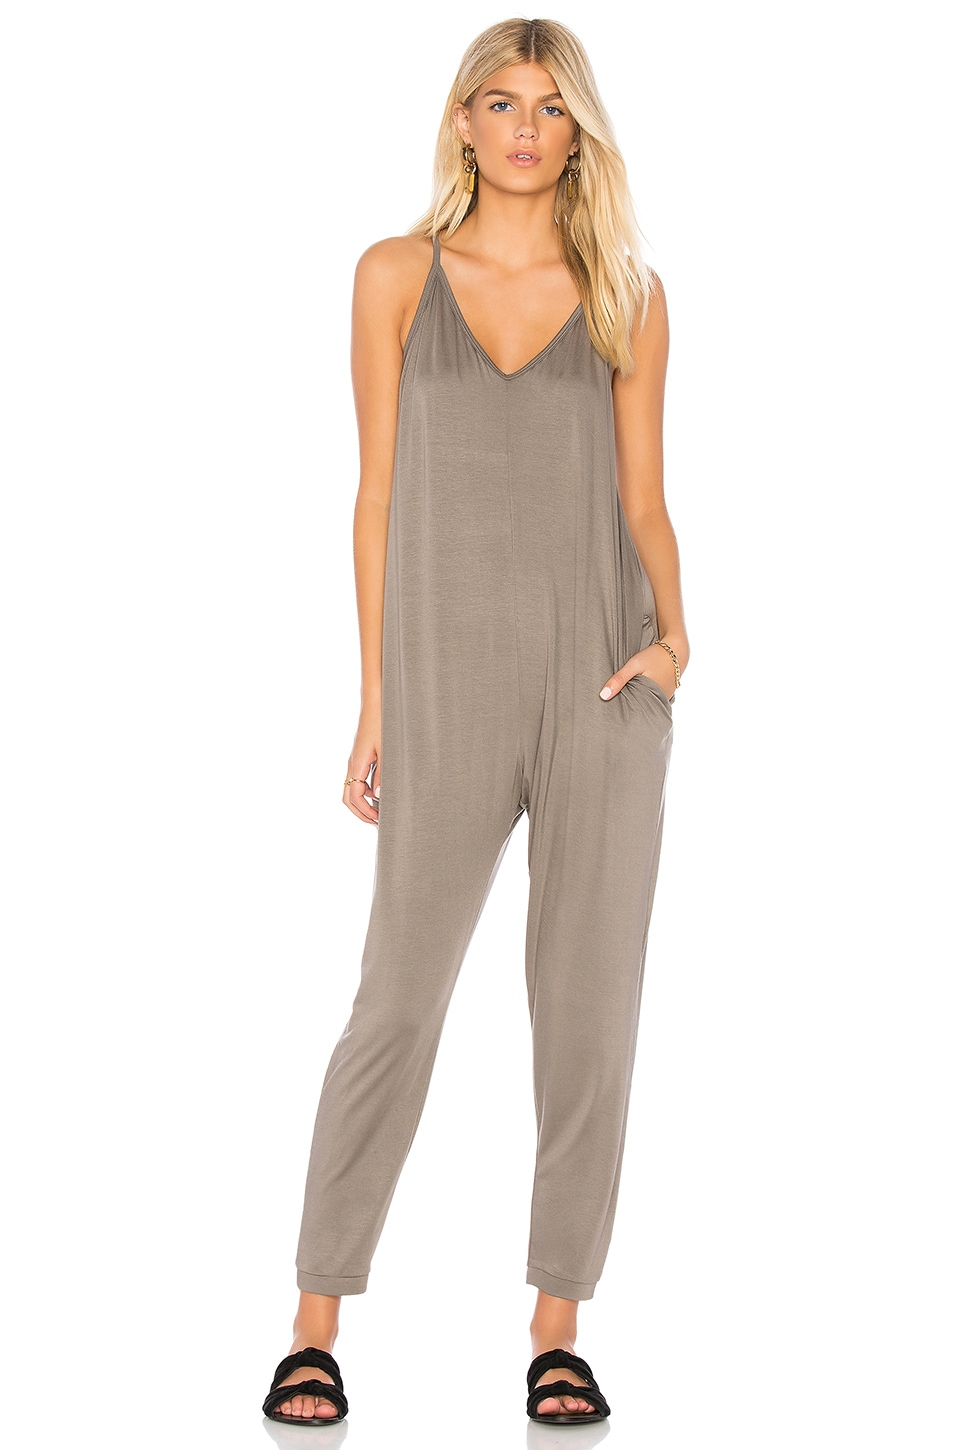 SEN Muse Jumpsuit in Gray